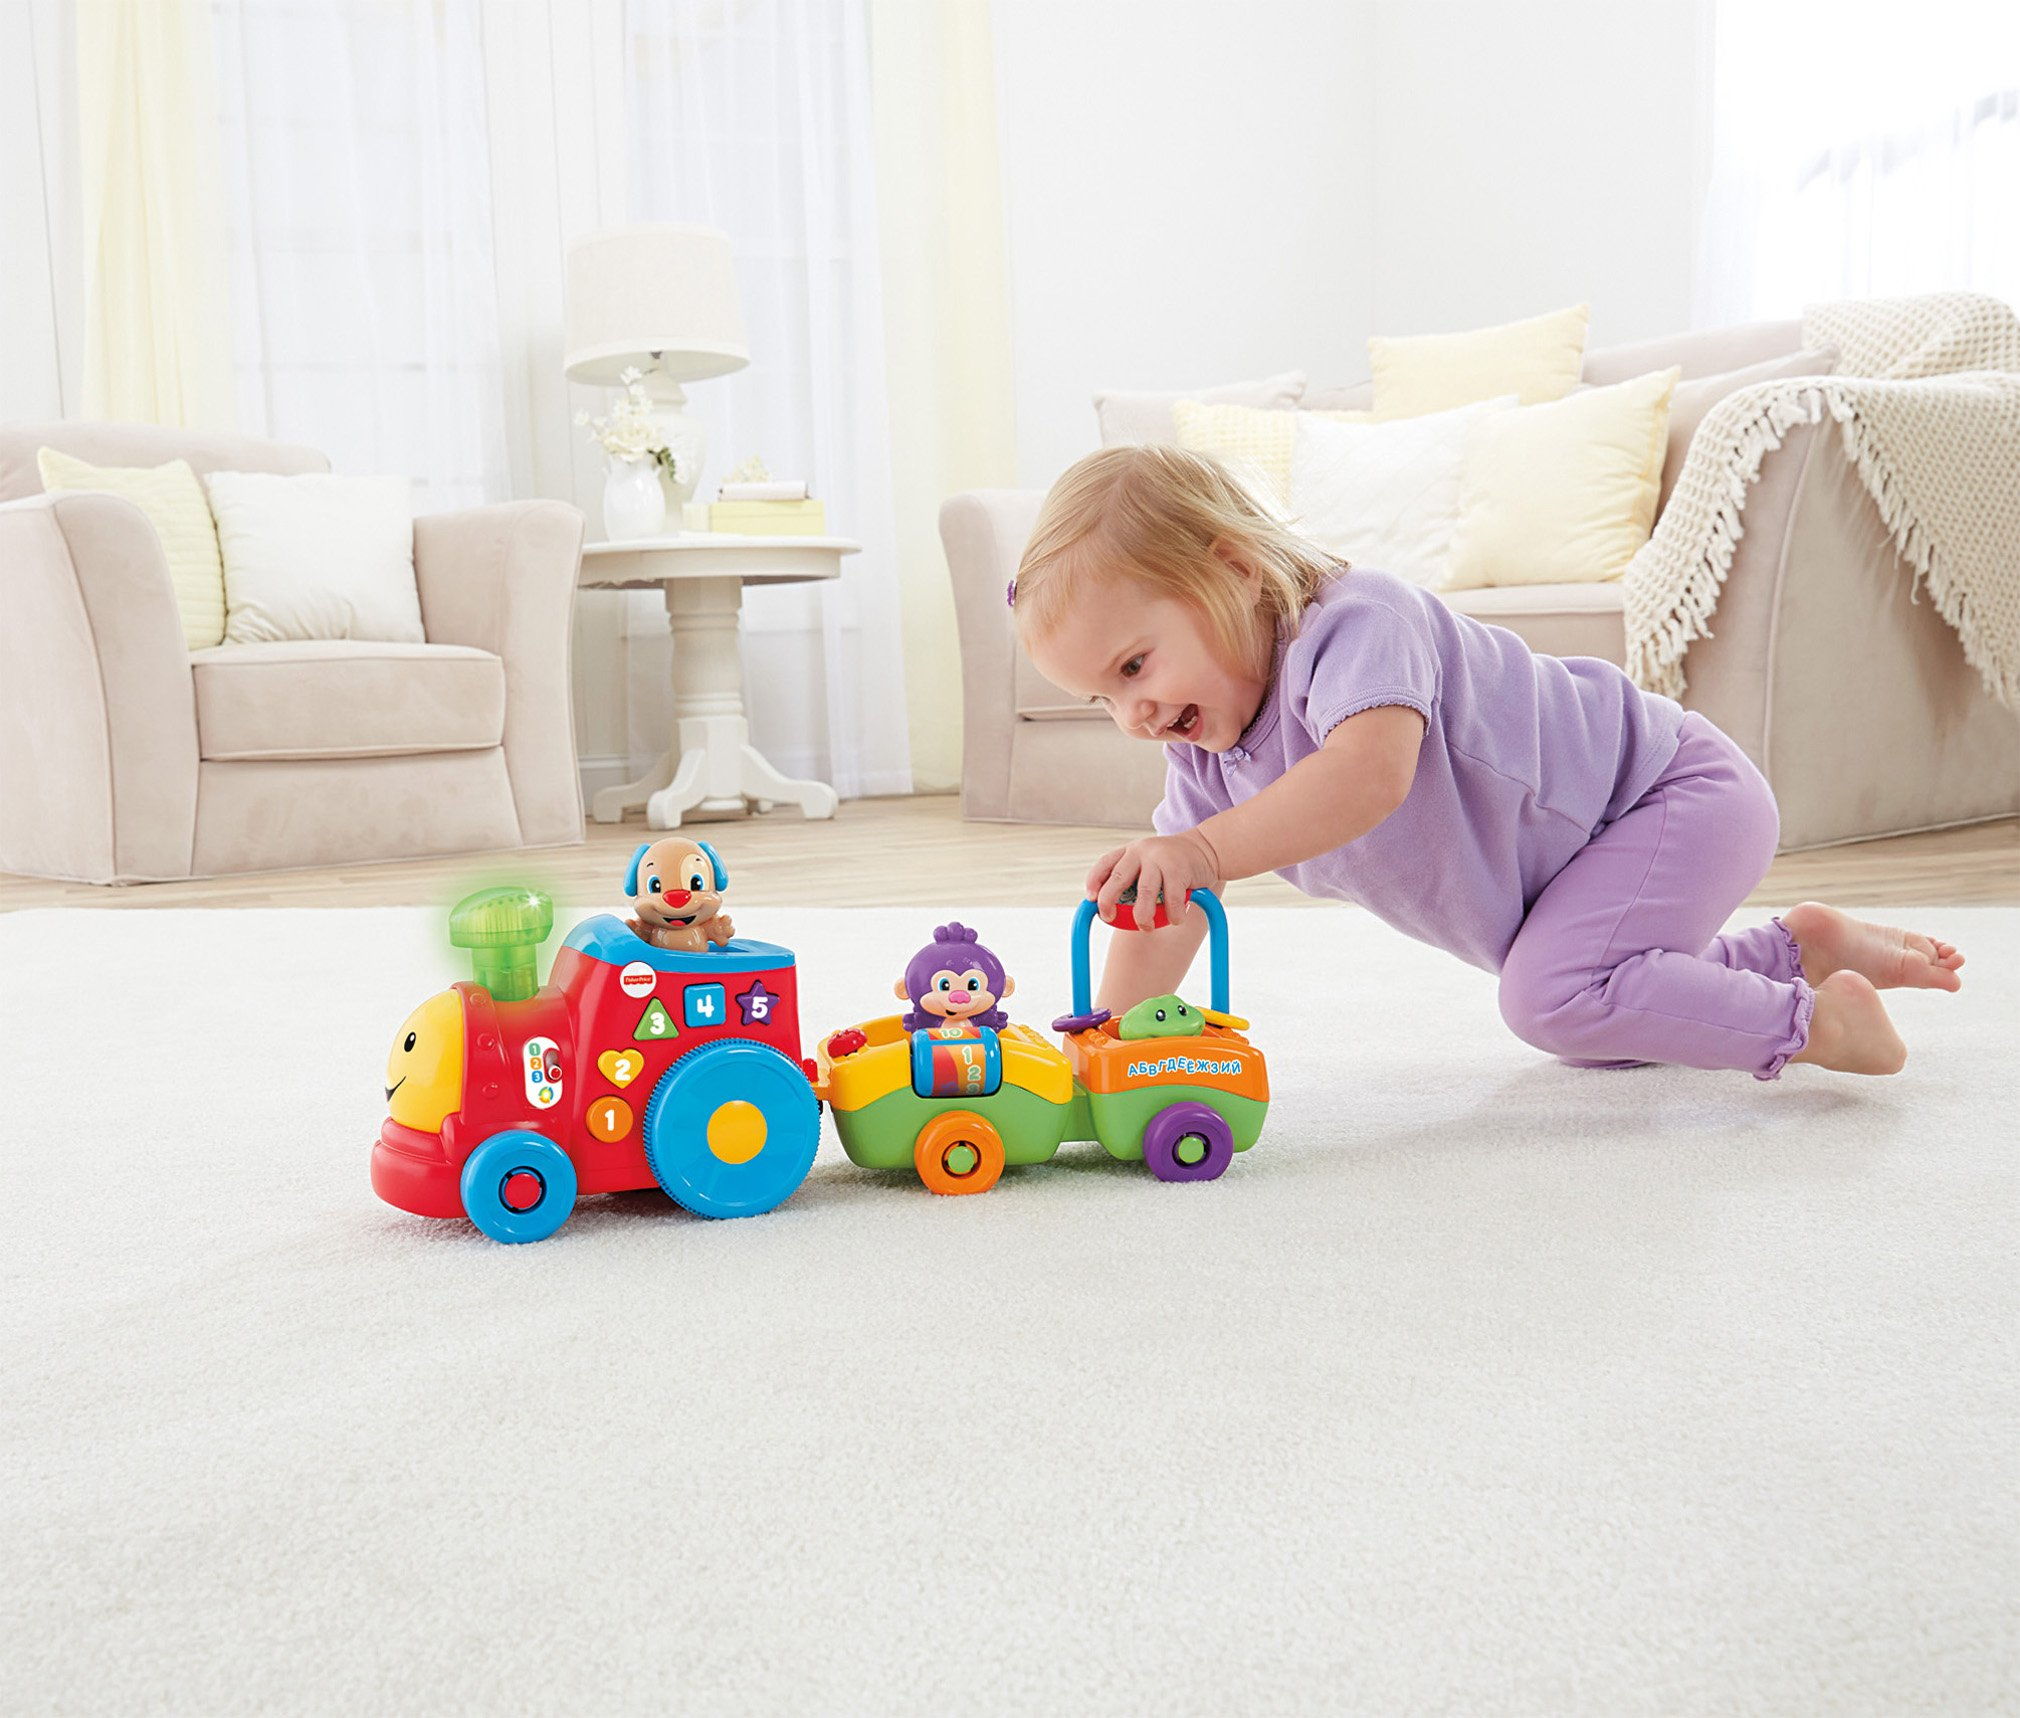 Fisher-Price Laugh & Learn Smart Stages Puppy's Smart Train by Fisher-Price (Image #6)